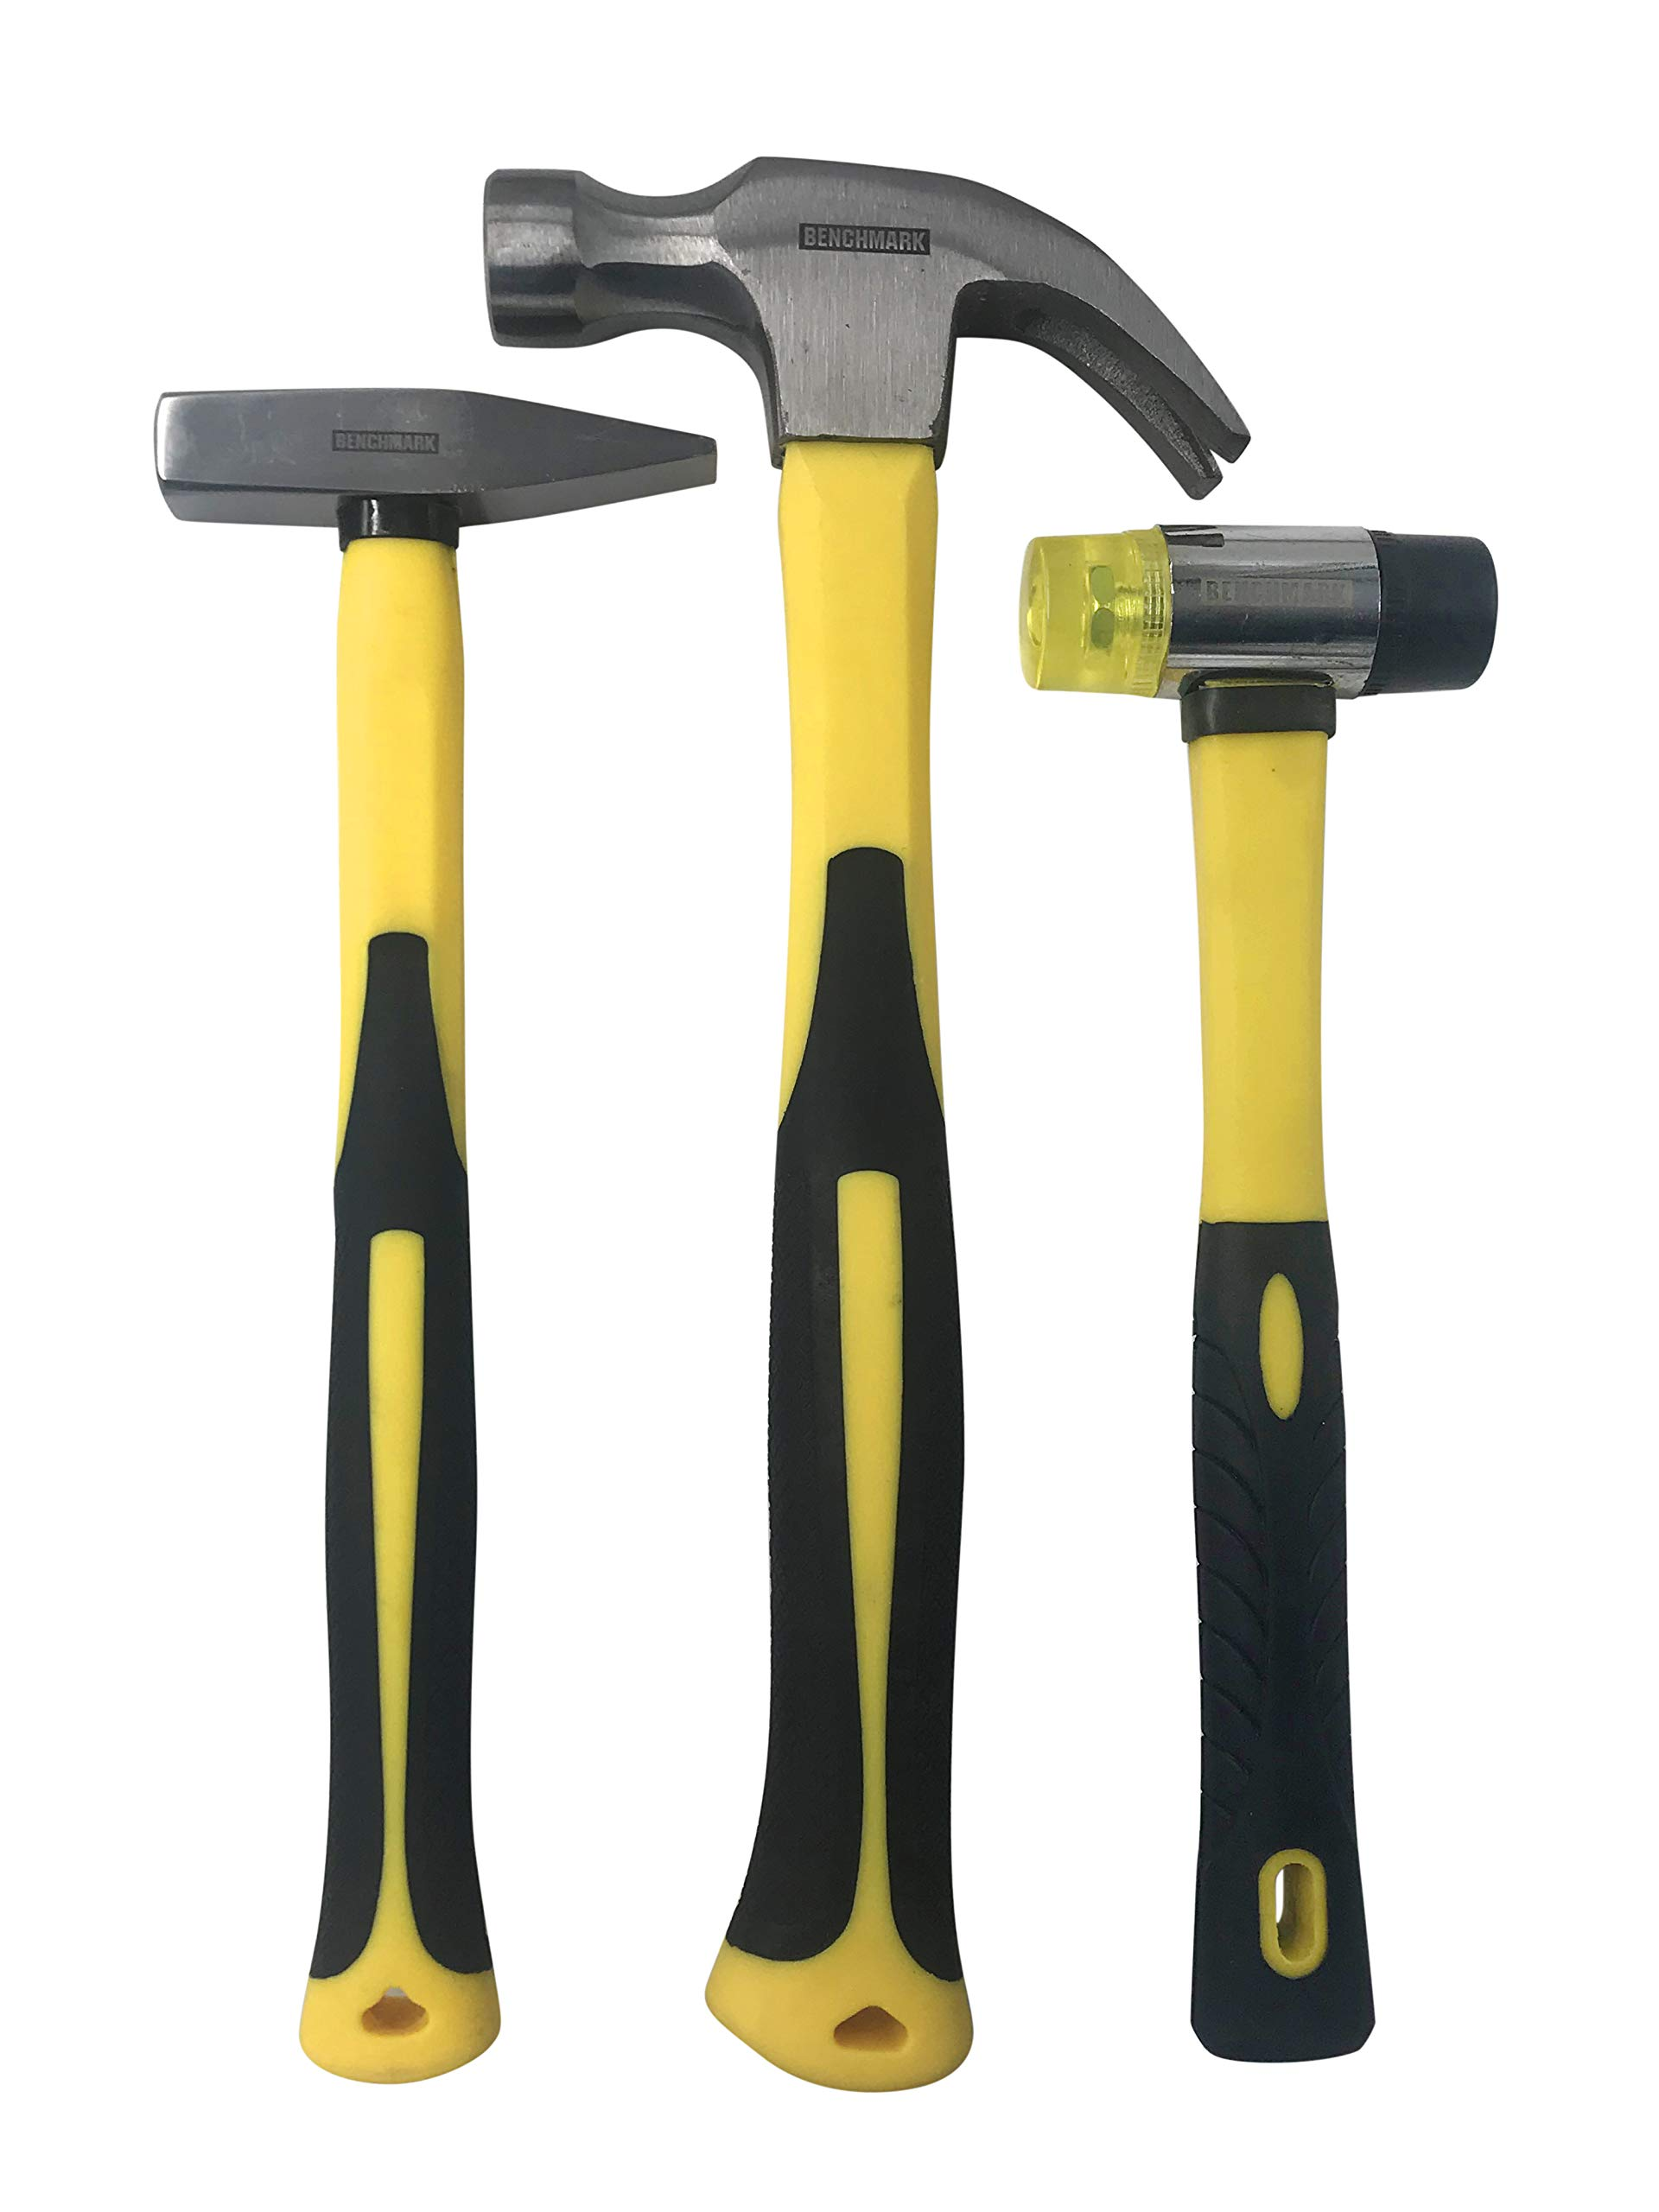 Benchmark - 3 Piece Hammer Set; 16 OZ. Claw Hammer, Double Sided Rubber Mallet and Tack Hammer; Shock Absorbing Rubber Grips, Durable Fiberglass Handles And Polished Steel Heads